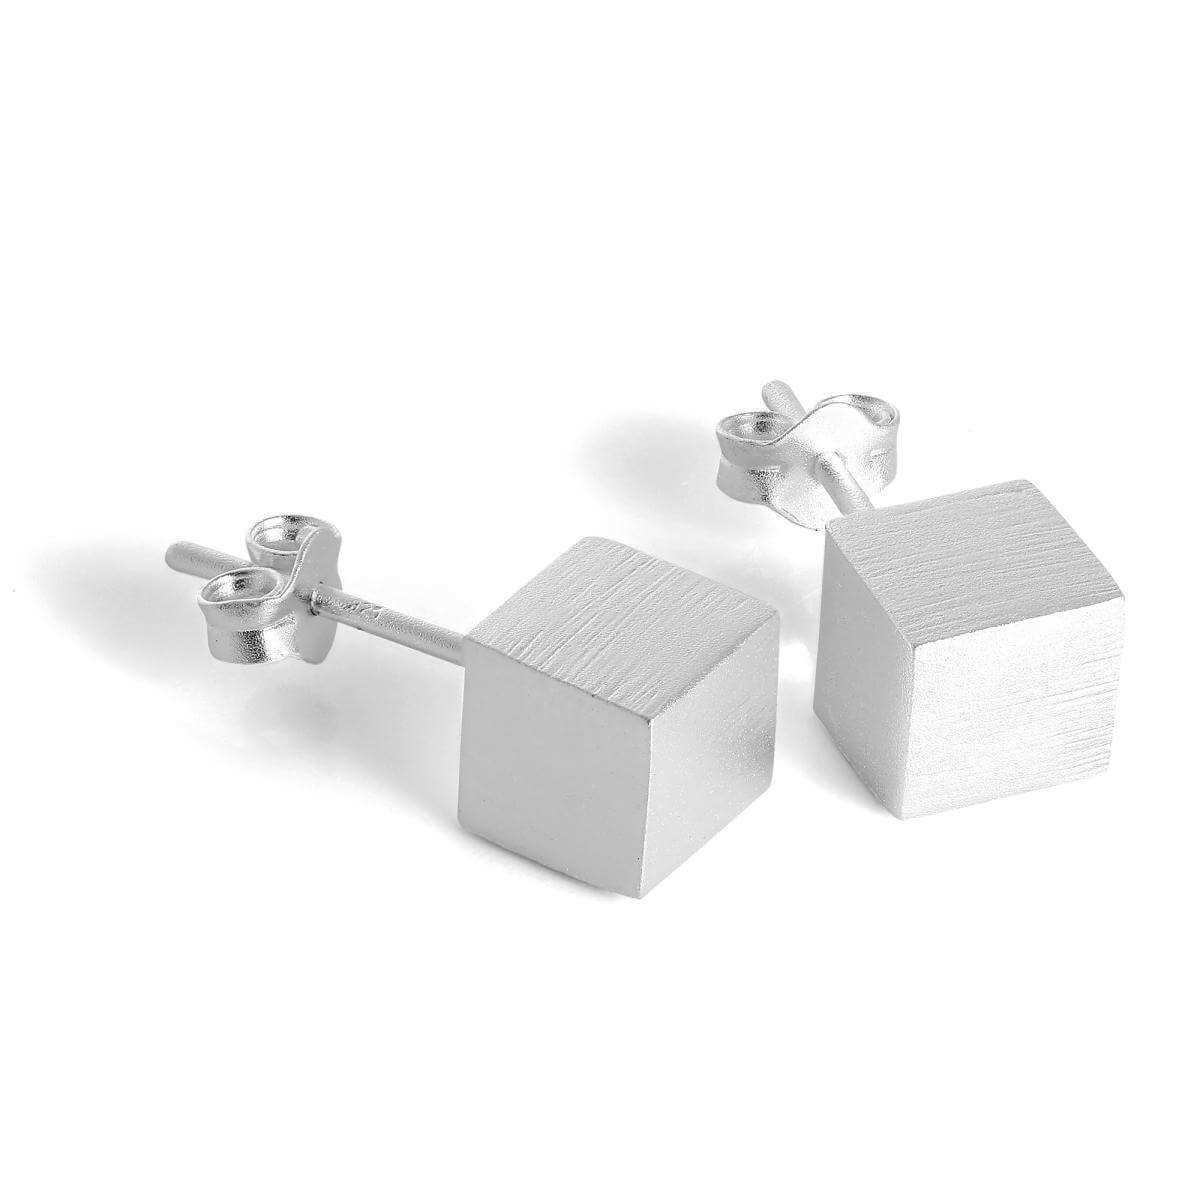 Brushed Matt Sterling Silver 6mm Cube Stud Earrings